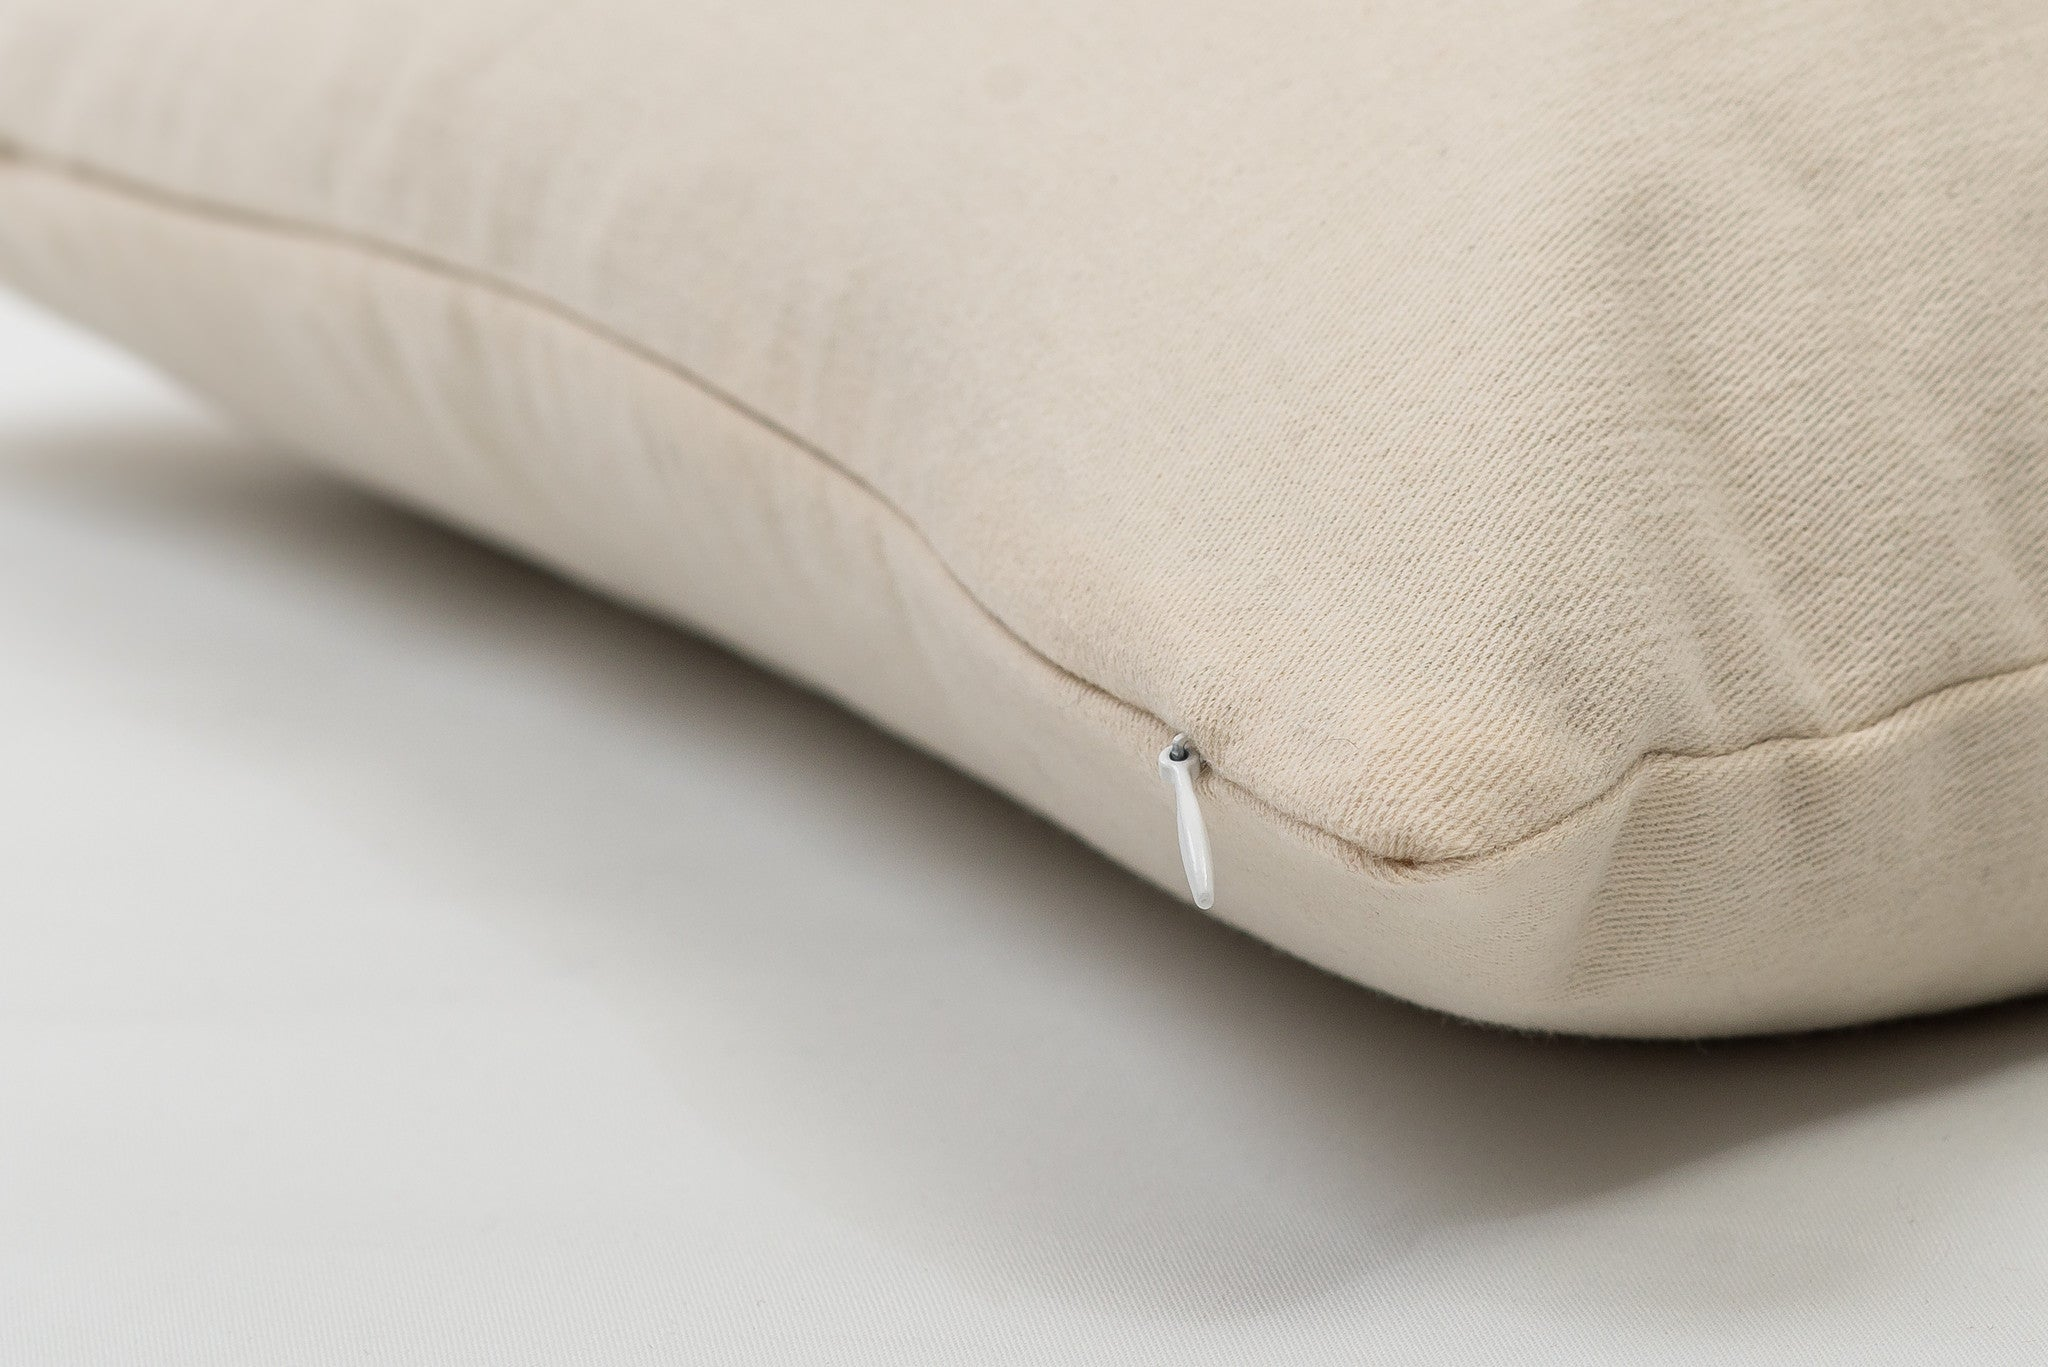 ComfySleep woven cotton twill cover with zipper